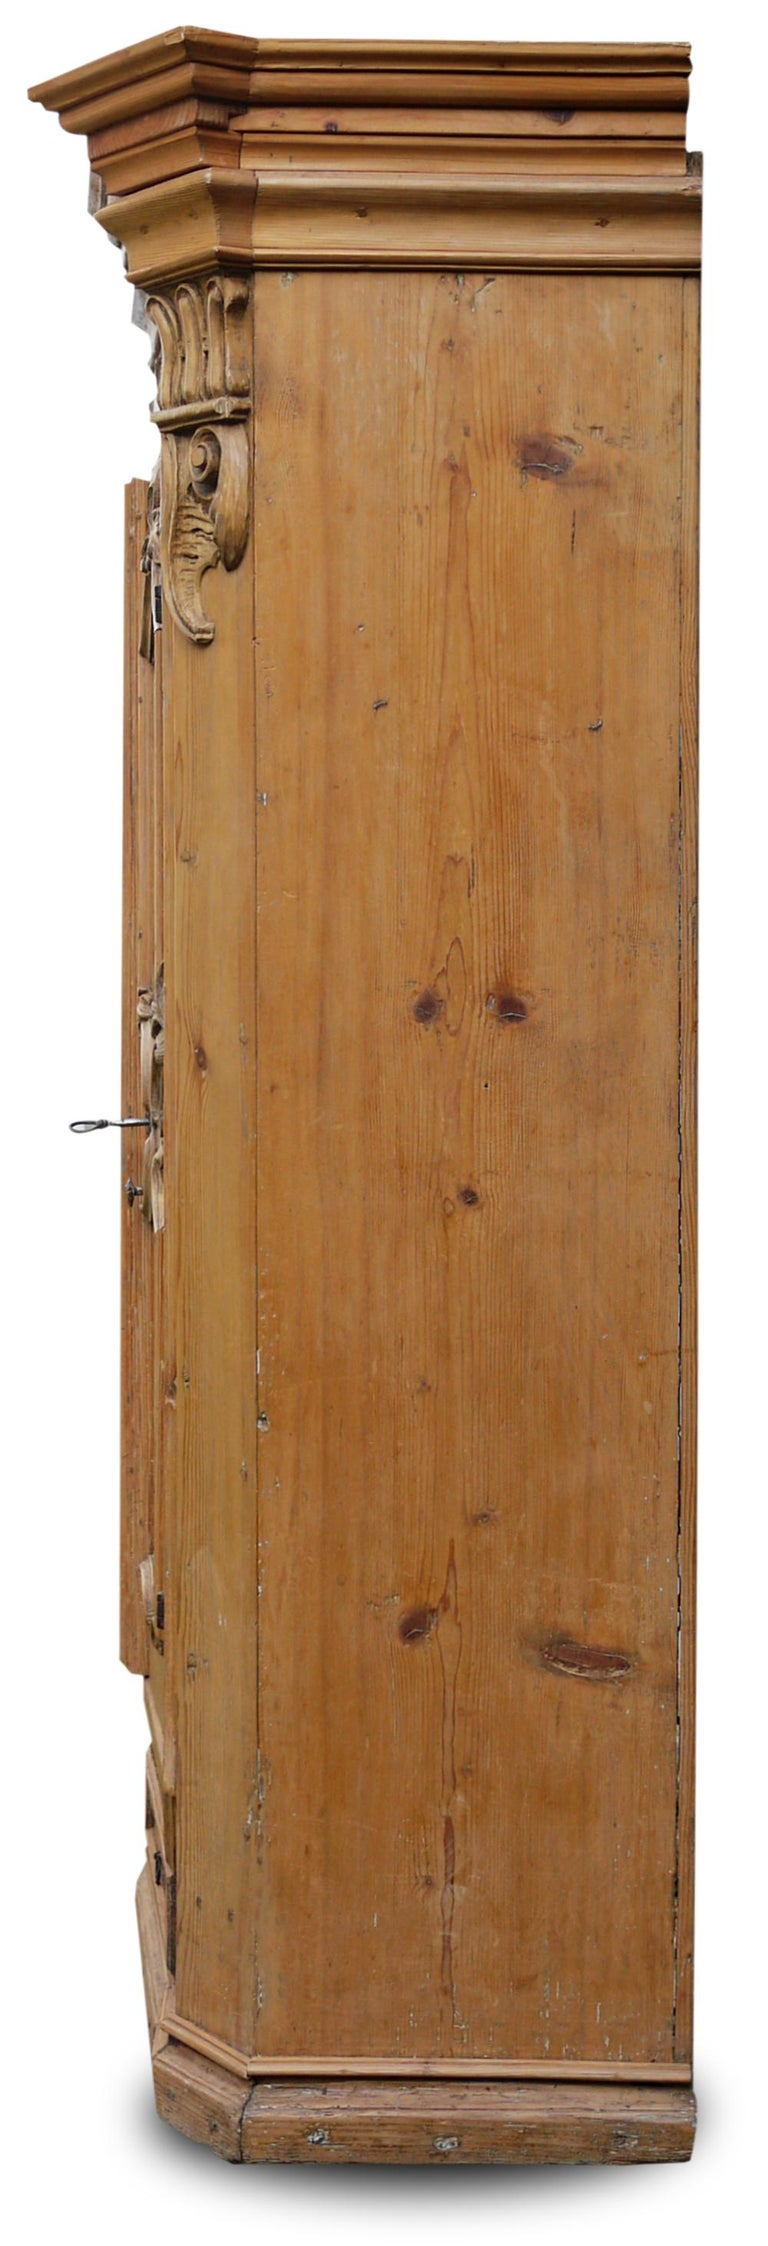 Italian Mid-18th Century Carved Wardrobe For Sale